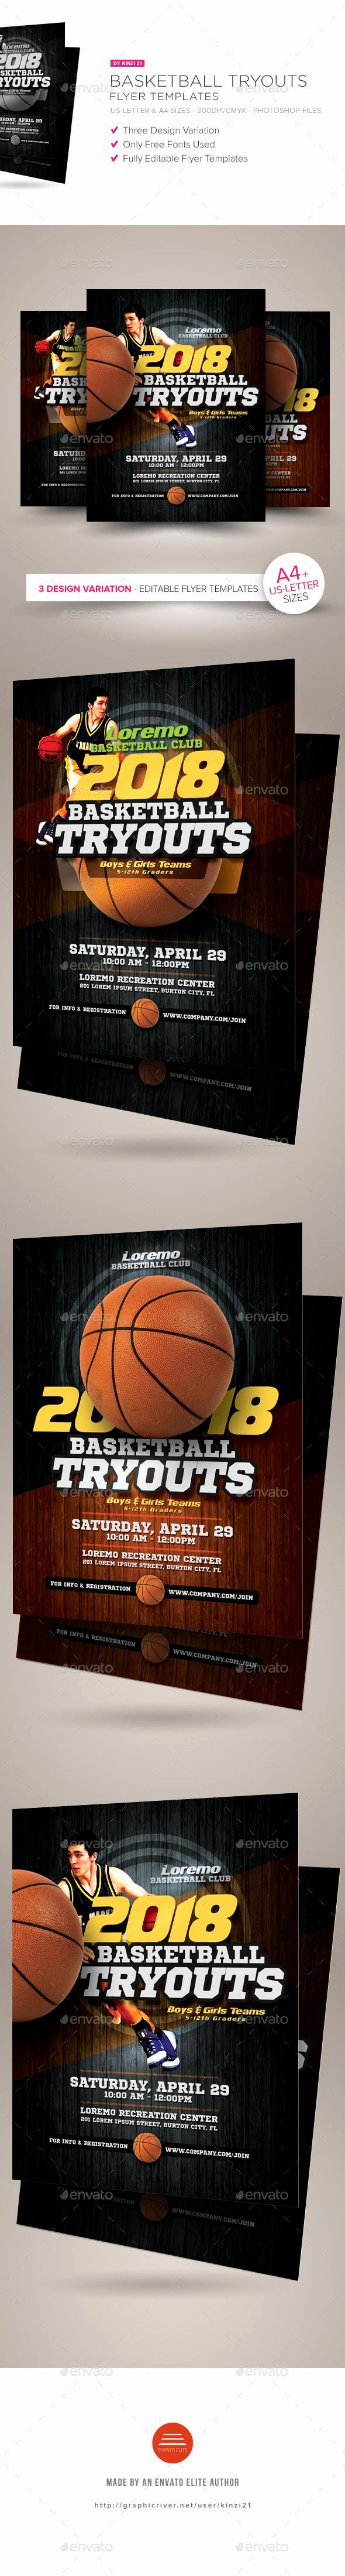 Basketball Tryout Flyer Template Inspirational 227 Best Flyer Templates Images On Pinterest